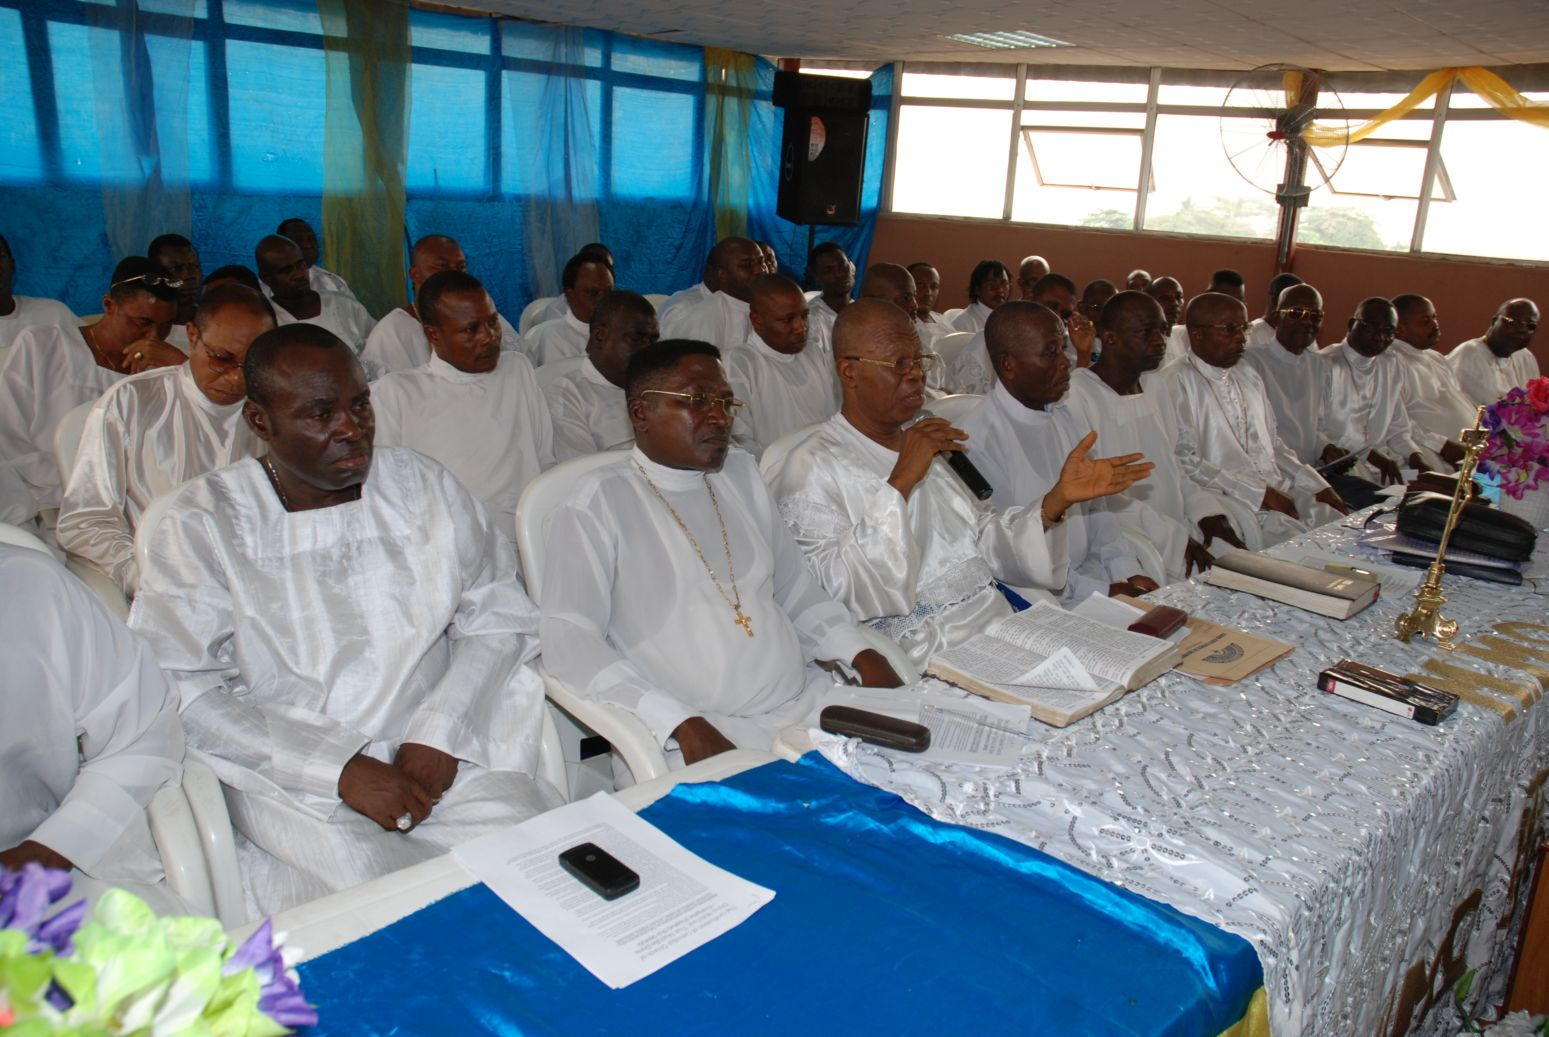 Hiseminence rt church of christ at a press conference in lagos tuesday january 27 2009 where oshodi renounced his rank and title as reverend and deputy pastor for publicscrutiny Gallery